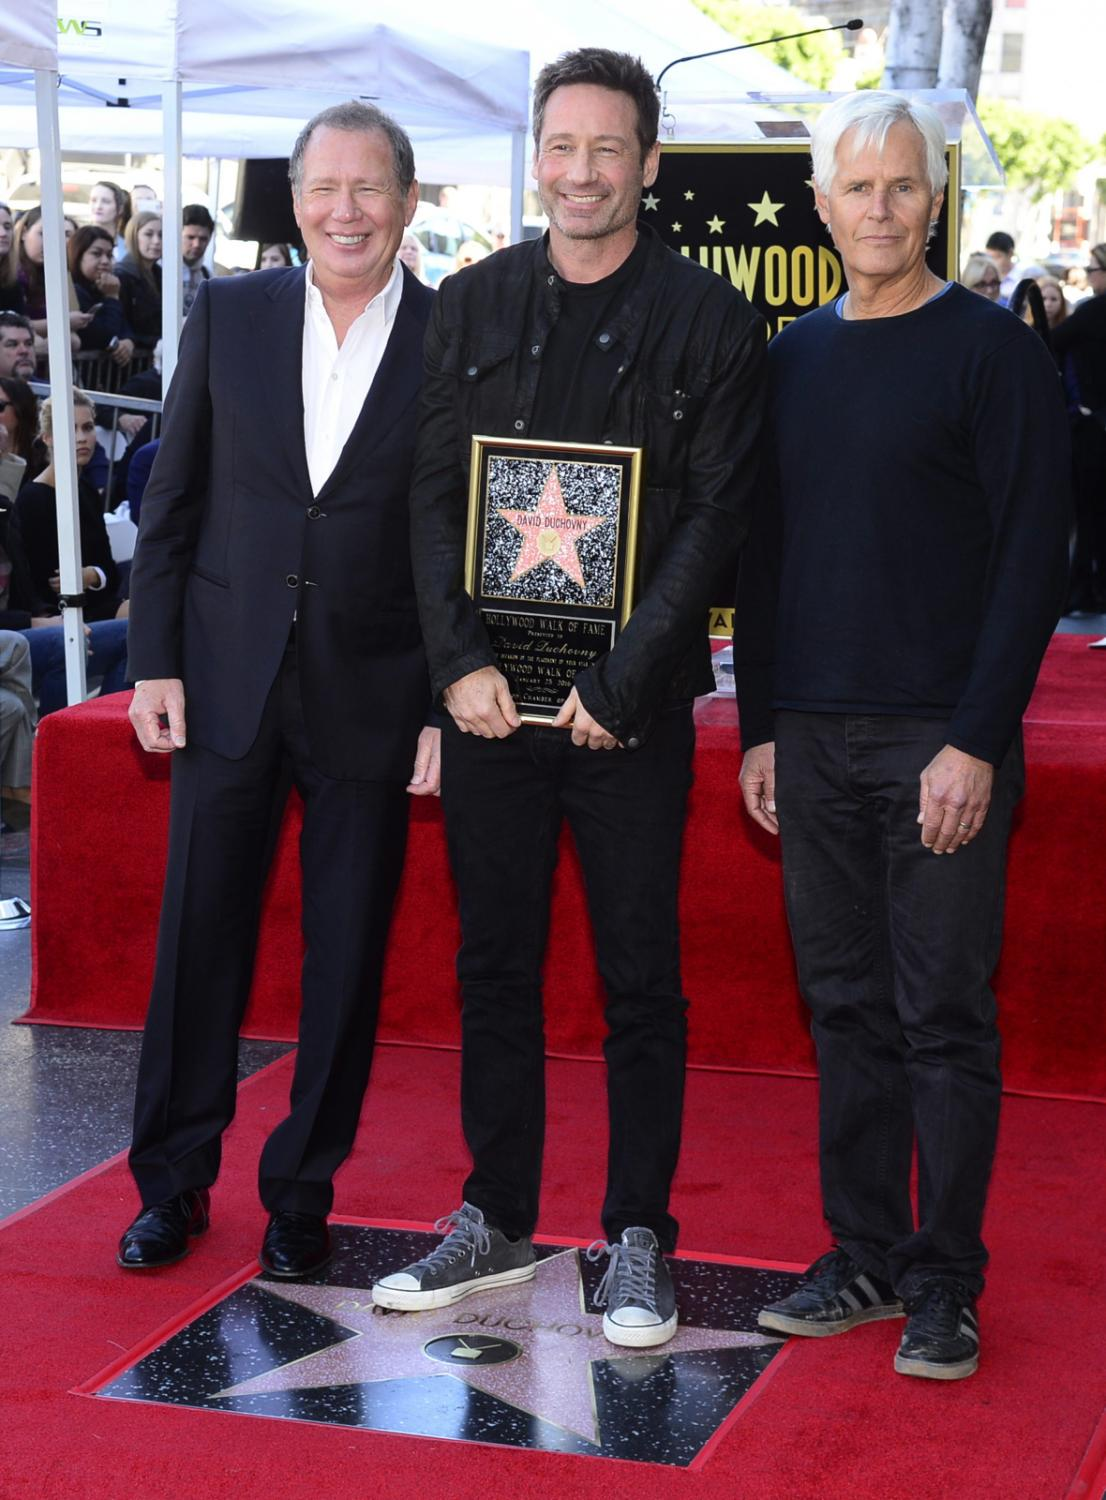 David Duchovny, Garry Shandling i Chris Carter podczas ceremonii w Alei Sław w Los Angeles